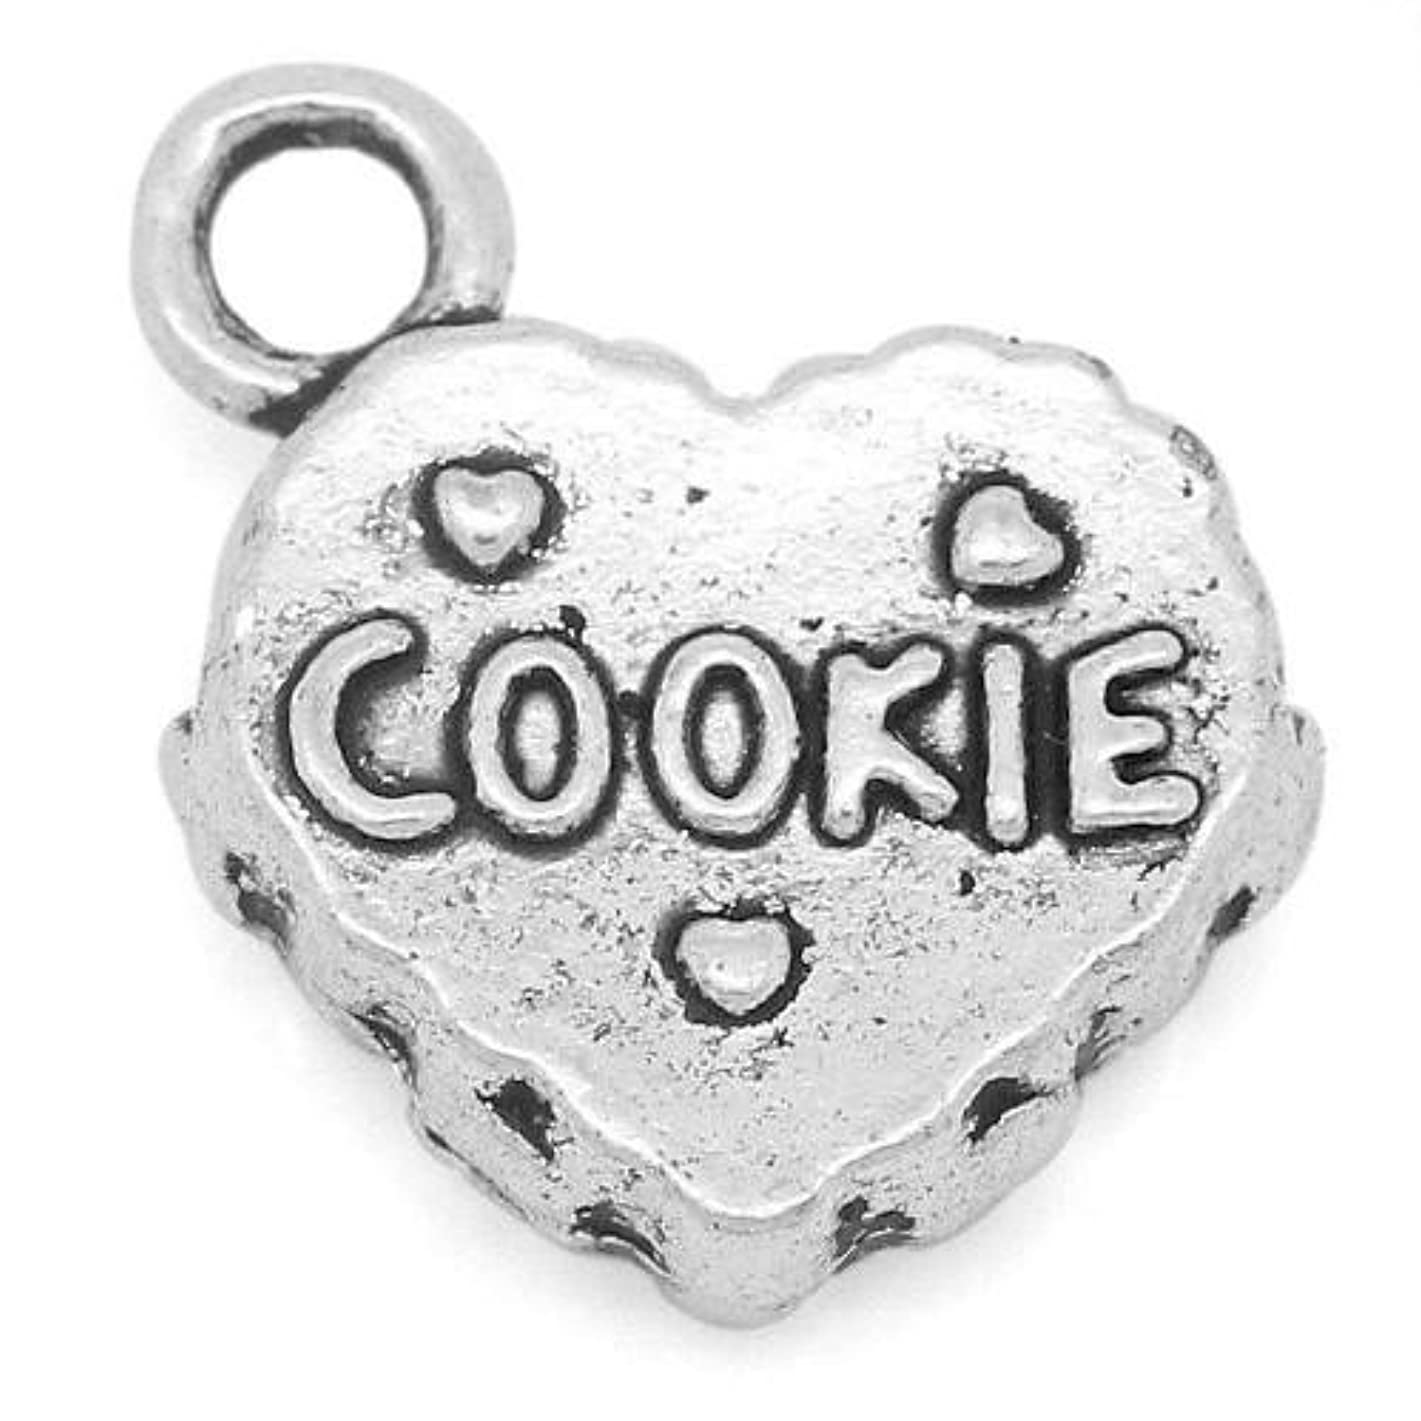 Packet of 10 x Antique Silver Tibetan 14mm Charms Pendants (Cookie) - (ZX04665) - Charming Beads